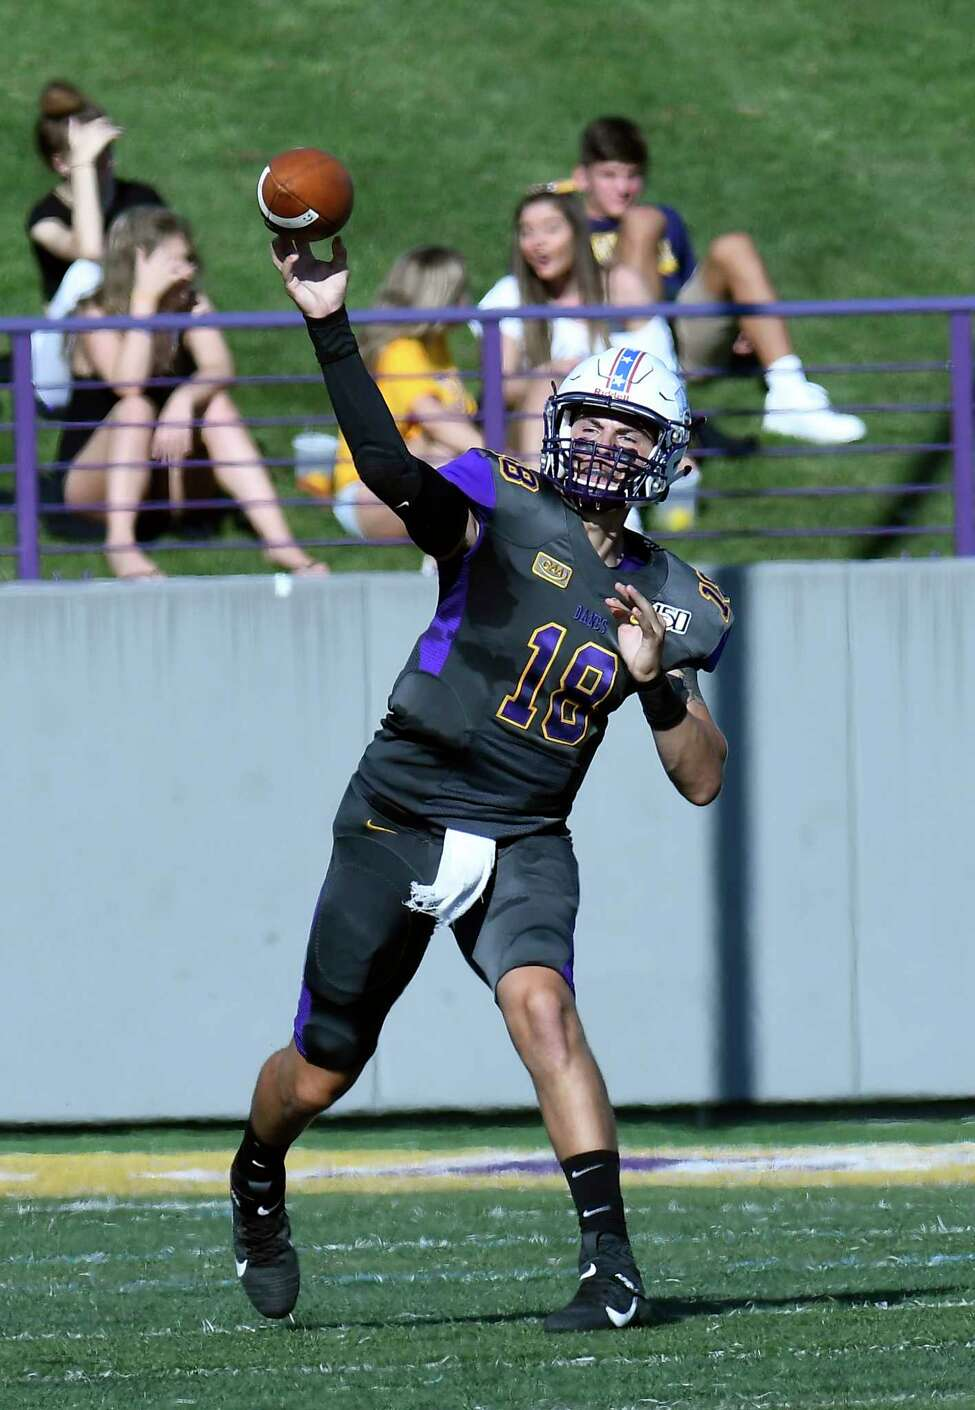 University at Albany quarterback Jeff Undercuffler (18) passes the ball against Lafayette during the first half of an NCAA college football game Saturday, Sept. 21, 2019, in Albany, N.Y.